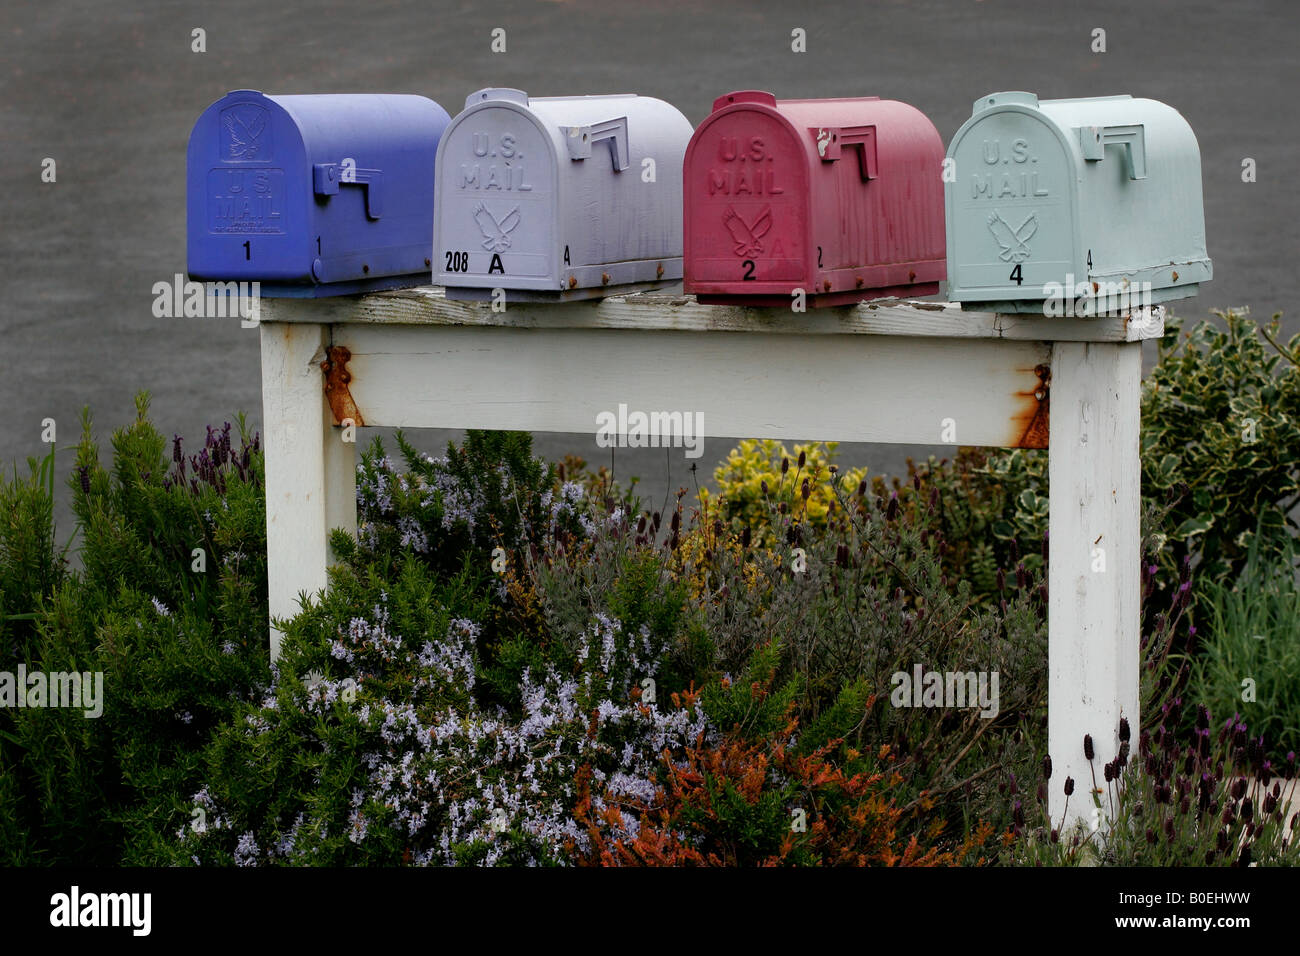 Colorful row of mailboxes - Stock Image